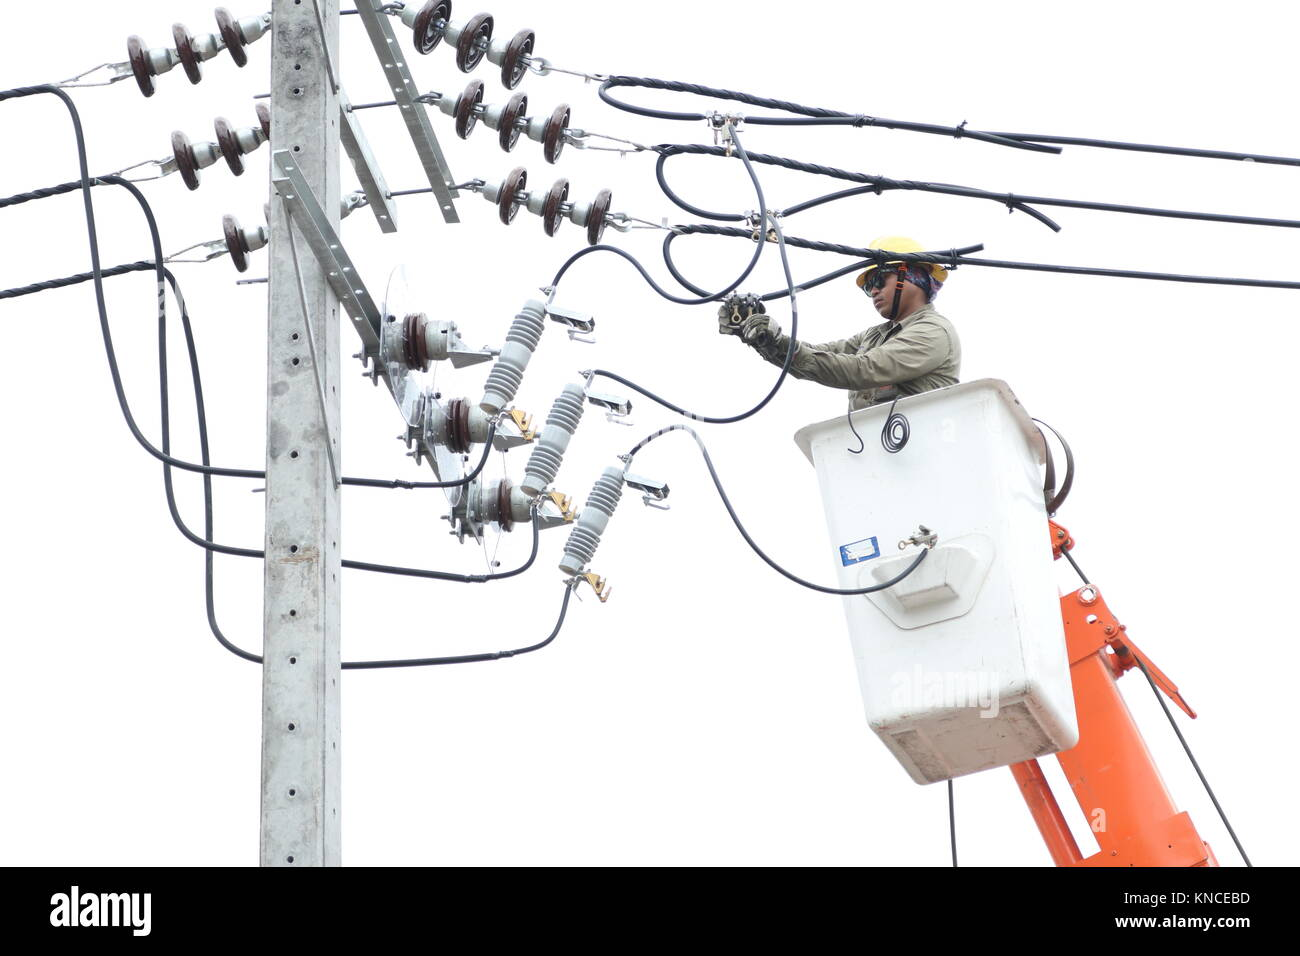 NONTHABURI, THAILAND - APRIL 29, 2017: Electrician are installing high powered electric cables to cope with the - Stock Image